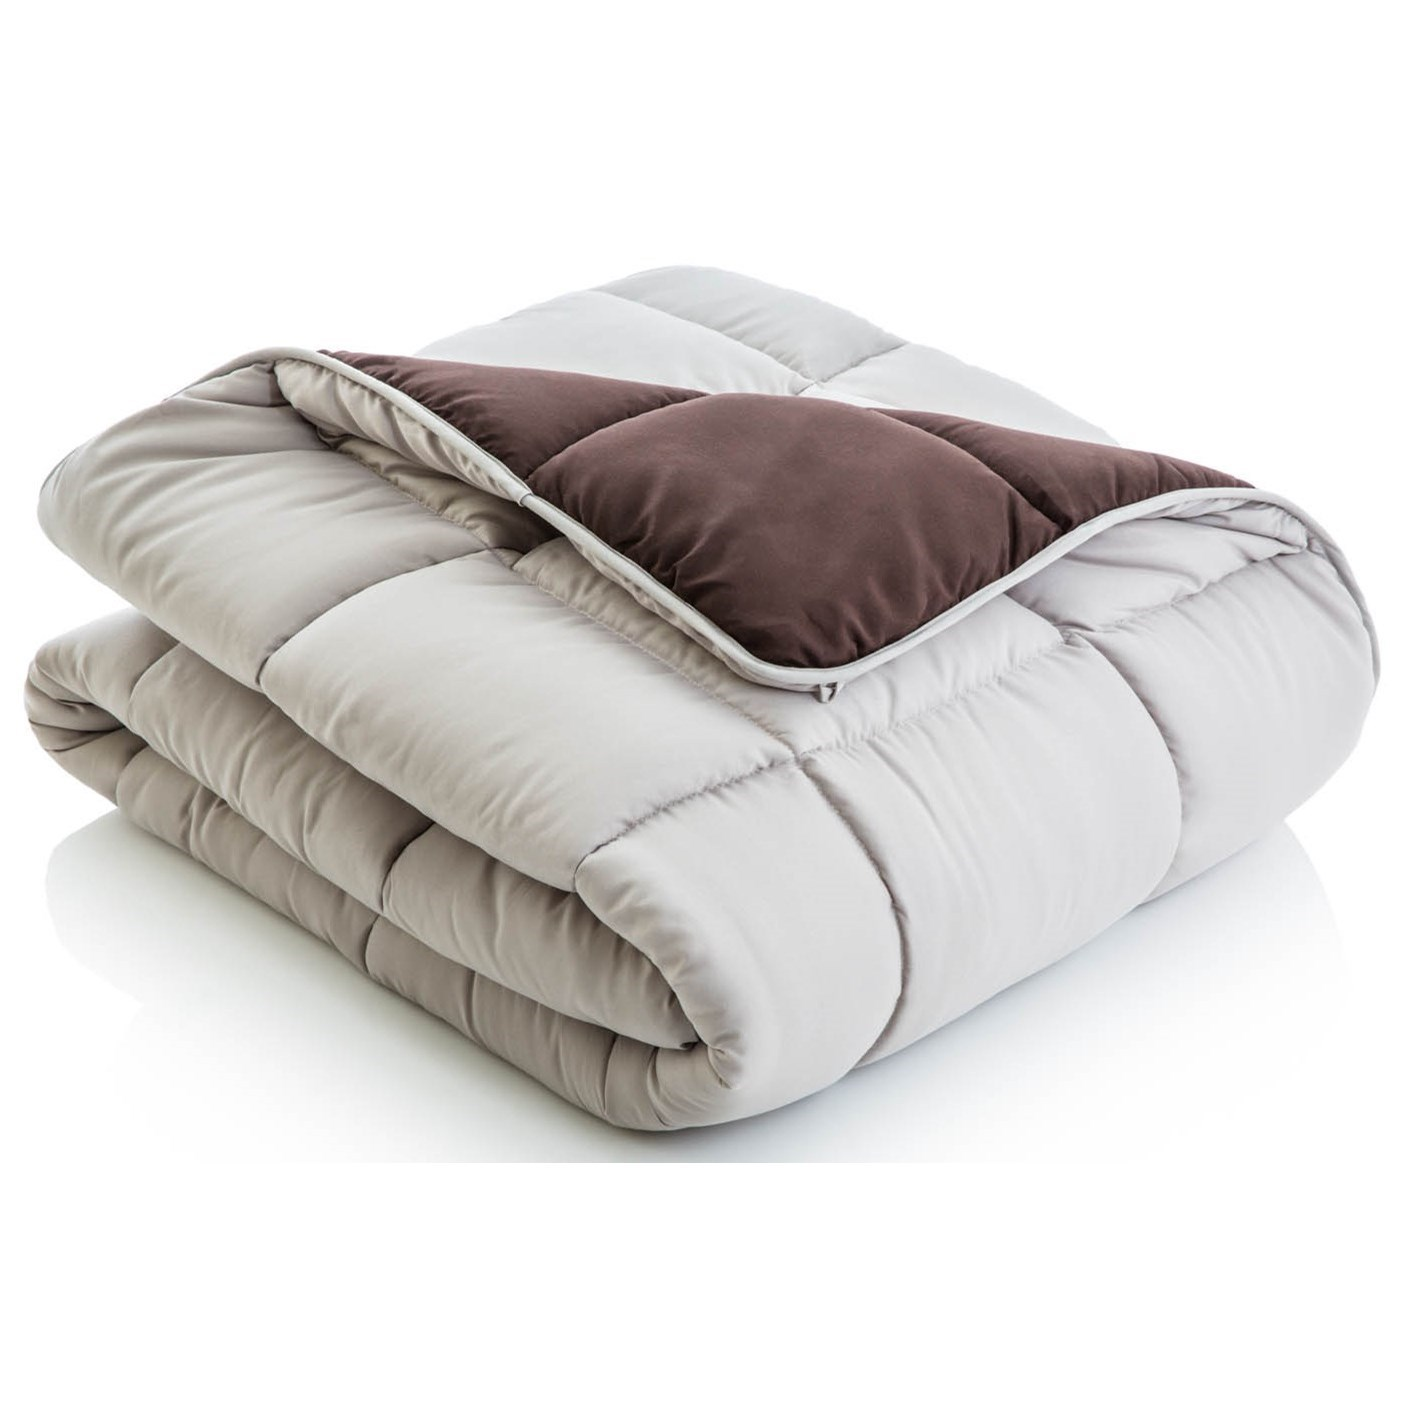 Malouf Reversible Bed in a Bag Split Cal King Reversible Bed in a Bag - Item Number: MA01SCDRCOBB